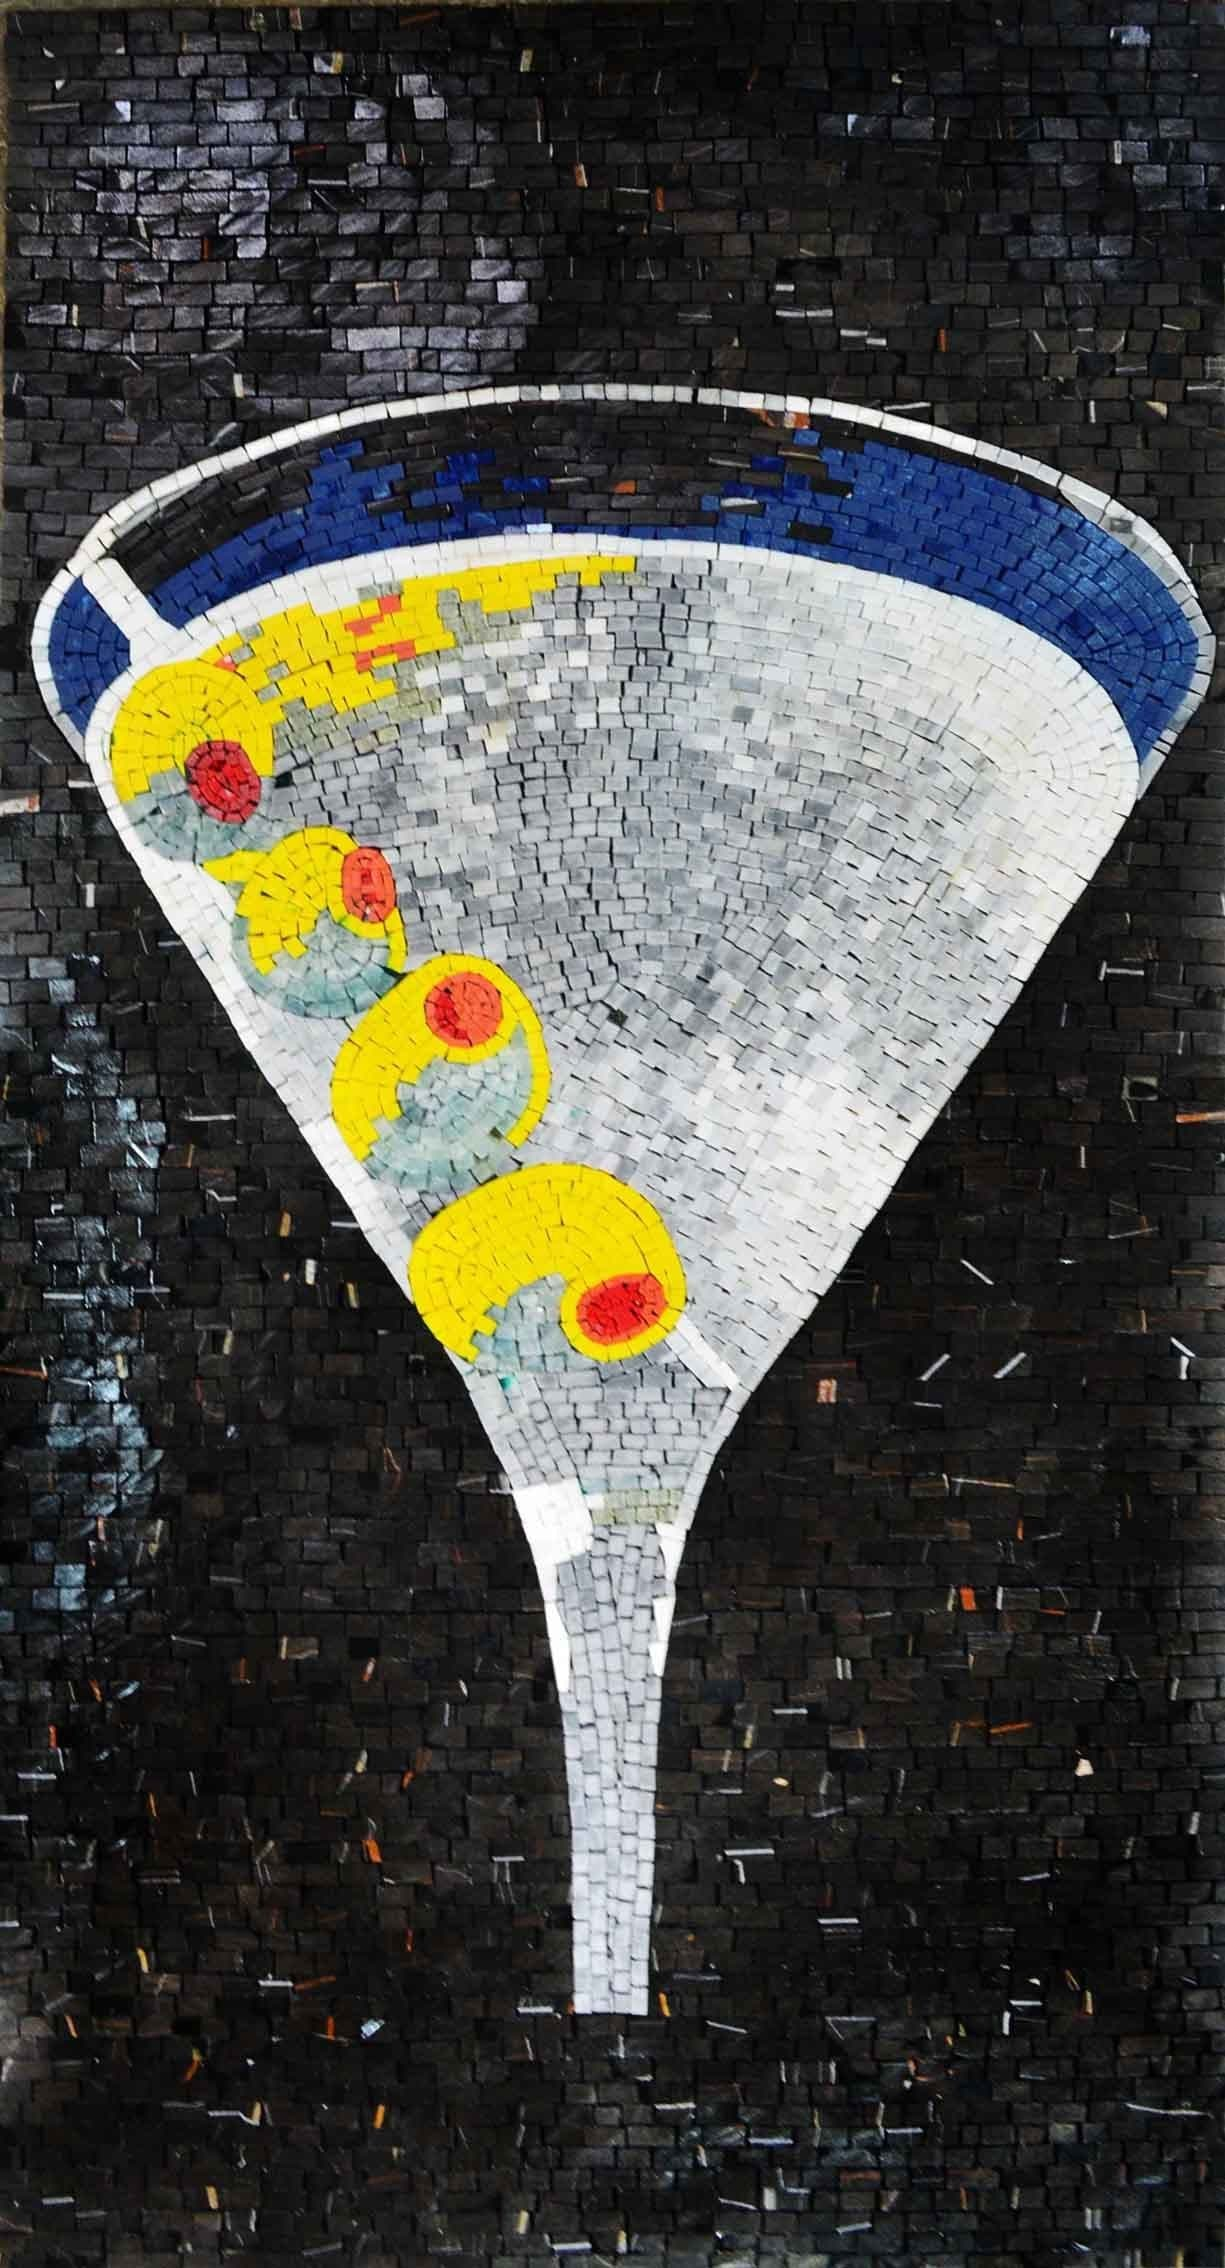 Martini Drink Mosaic Decorative Artwork